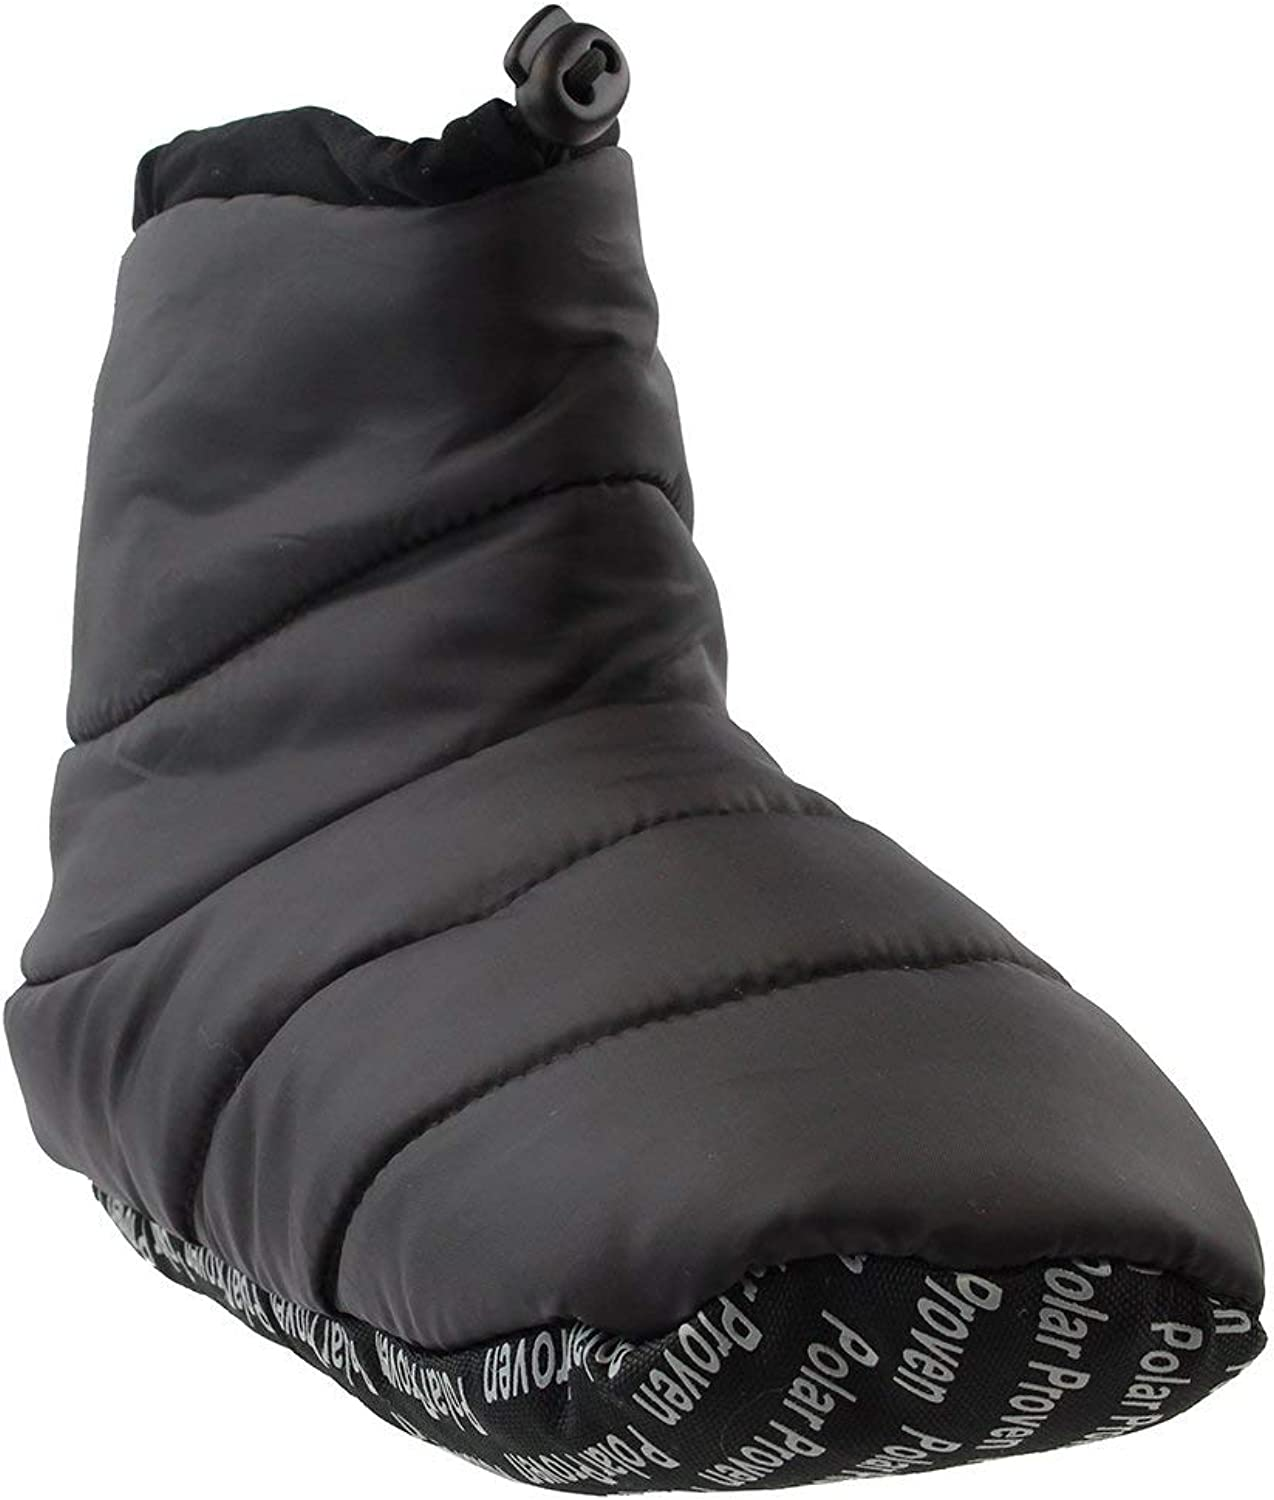 7b17780e87797 Unisex Cush Booty Charcoal M Baffin X-Large nnwnqp1433-New Shoes ...